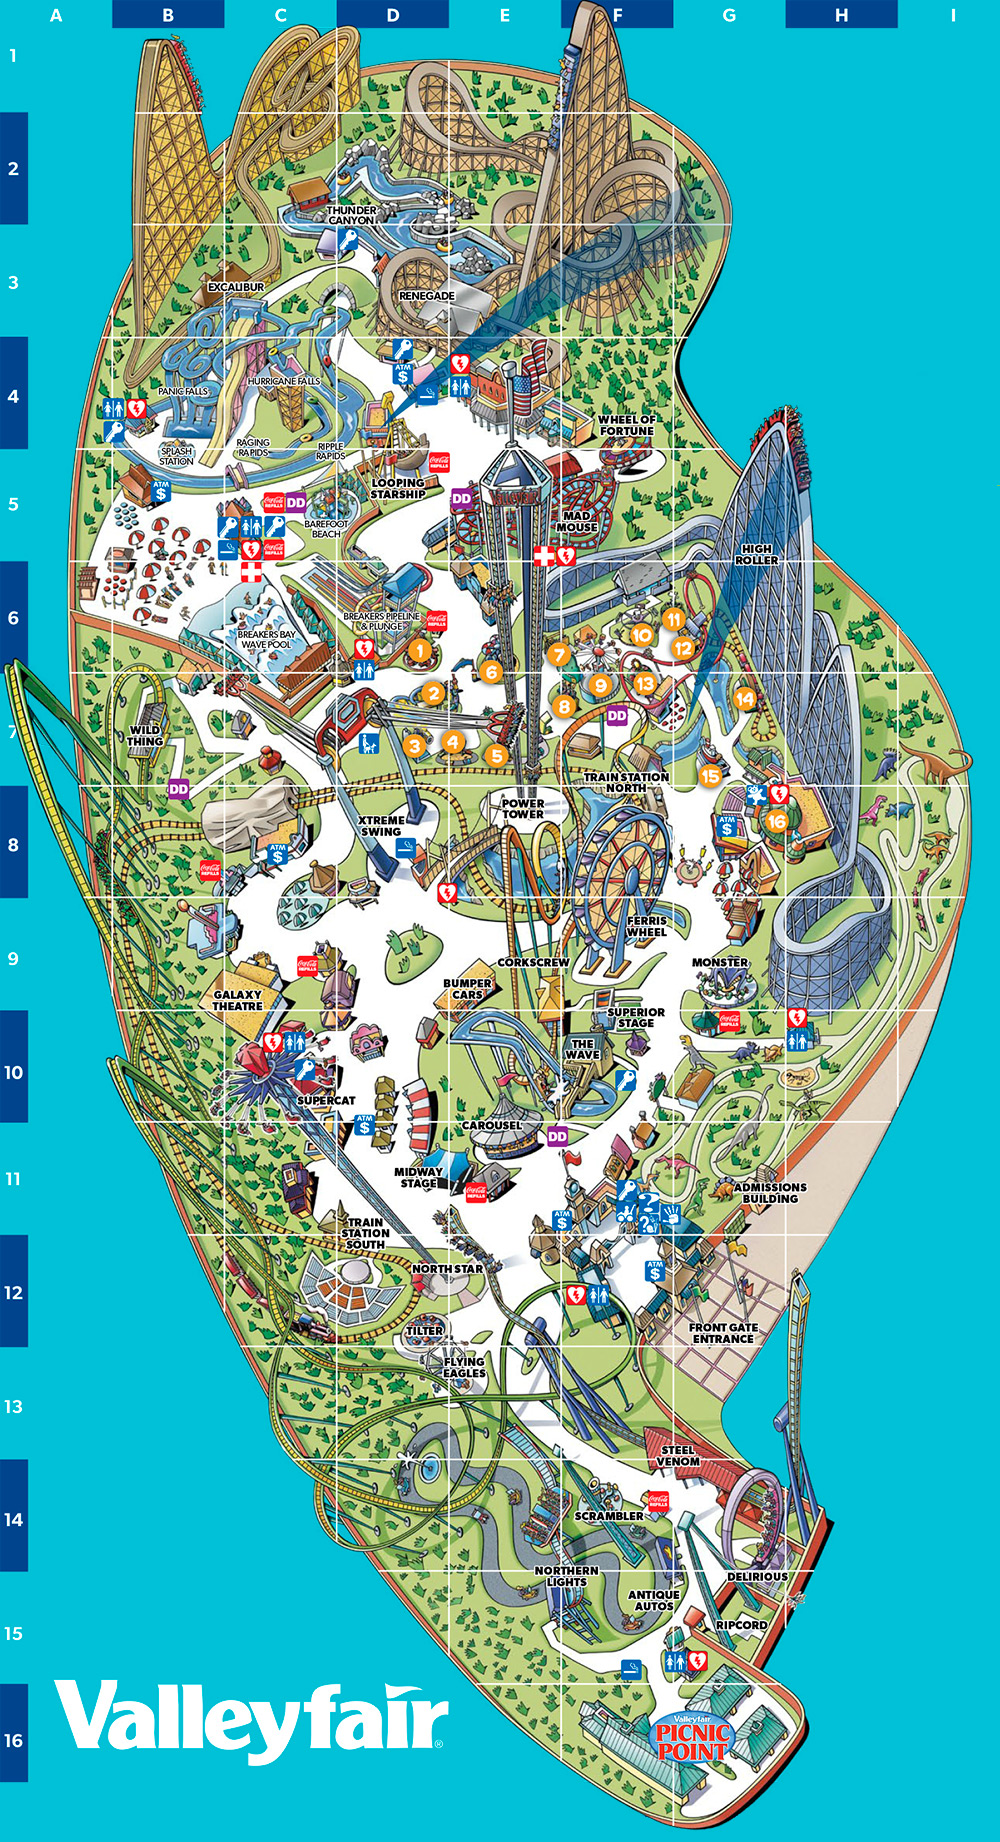 Valleyfair 2017 park map.